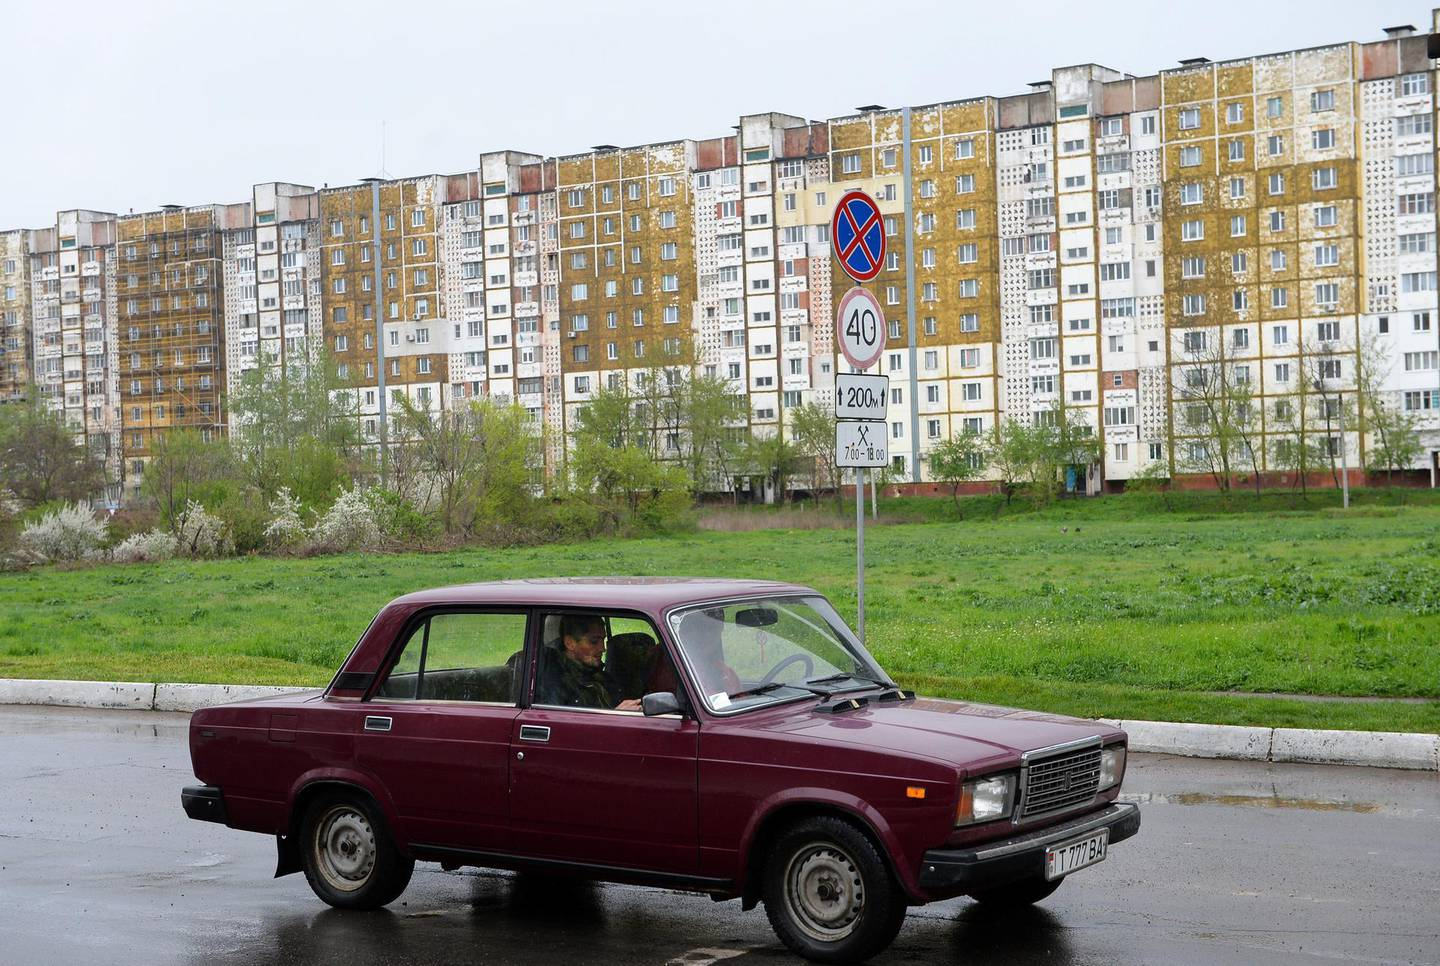 """A """"Lada"""" car, a brand well known during the communist era of former URSS drives in Tiraspol, the main city of Transdniestr separatist republic of Moldova April 16, 2014. Ukrainian Minister of foreign Affairs, Andrii Dechtchytsia, said was """"very concerned"""" by Transnistria breakaway pro-Russian entity in Moldova, while Moscow has to proceed to the annexation of Crimea to Russia.  """"The situation in Transnistria is a major concern, not only for Ukraine, not only for Moldova"""" stated Mr. Dechtchytsia during a press conference in the Brussels Forum of the German Marshall Fund. Transnistria, a small strip of land of 500,000 inhabitants in eastern Moldova, has won the support of Russia, a short war of independence after the collapse of the USSR in 1991. It is not recognized by the international community. AFP PHOTO DANIEL MIHAILESCU / AFP PHOTO / DANIEL MIHAILESCU"""